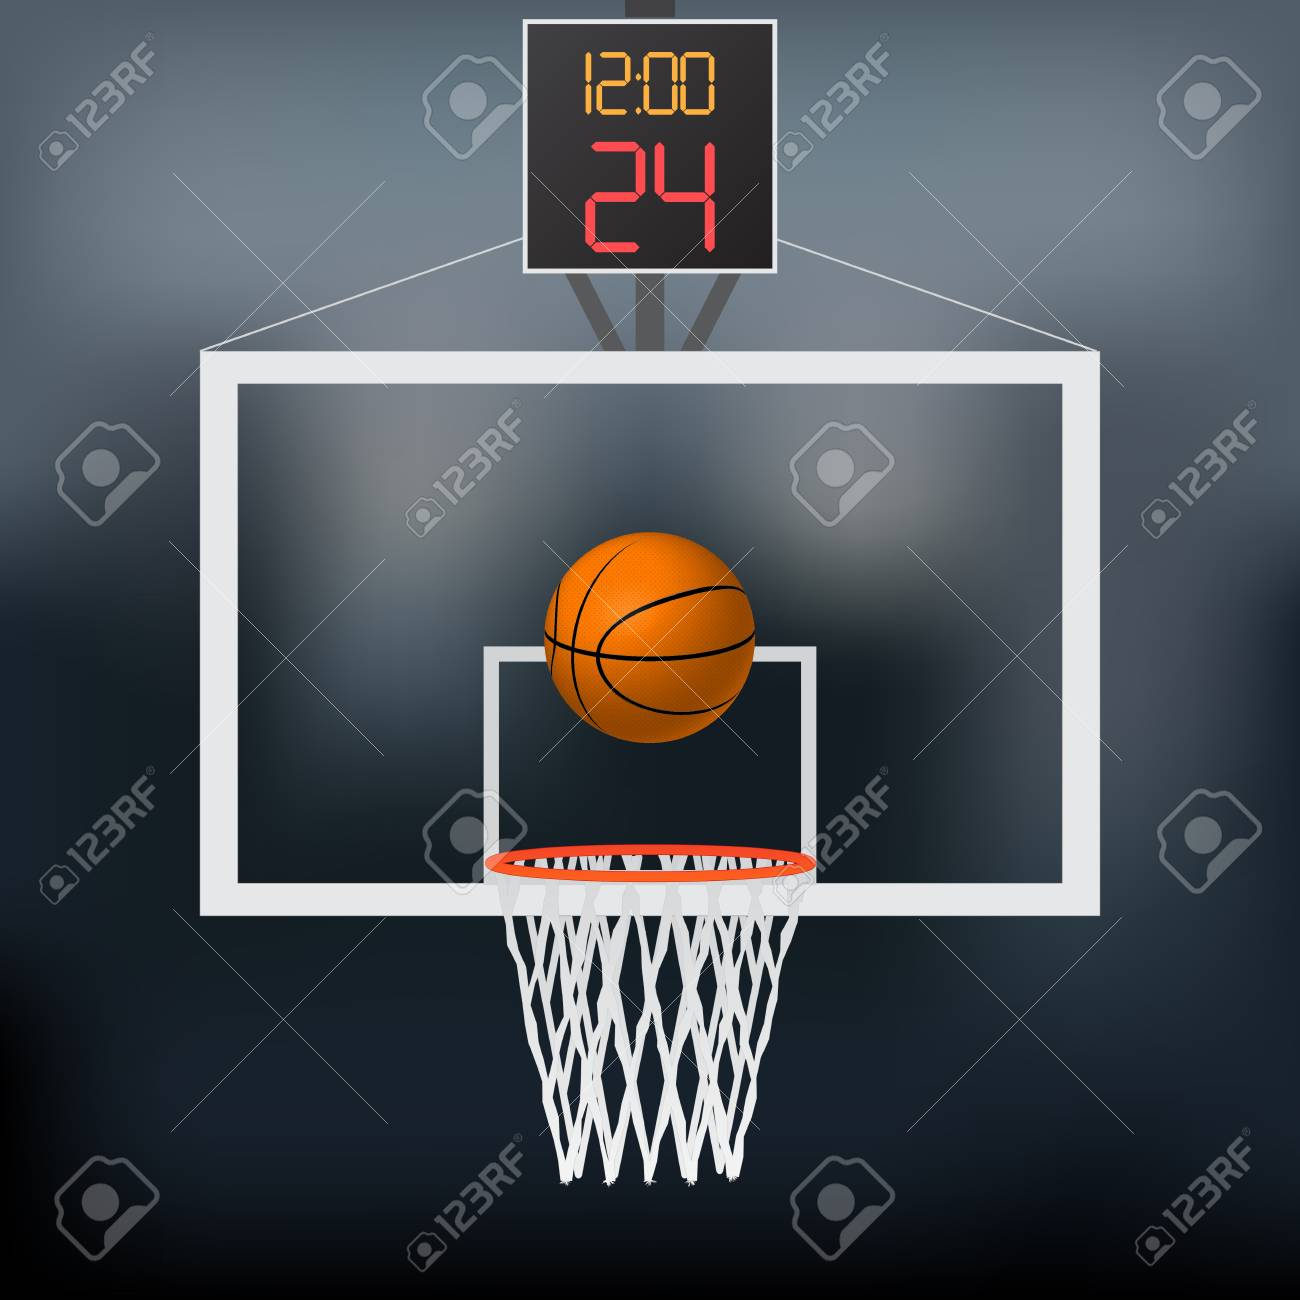 Illustration of a basketball hoop, basketball and backboard isolated on a white background. - 97101983